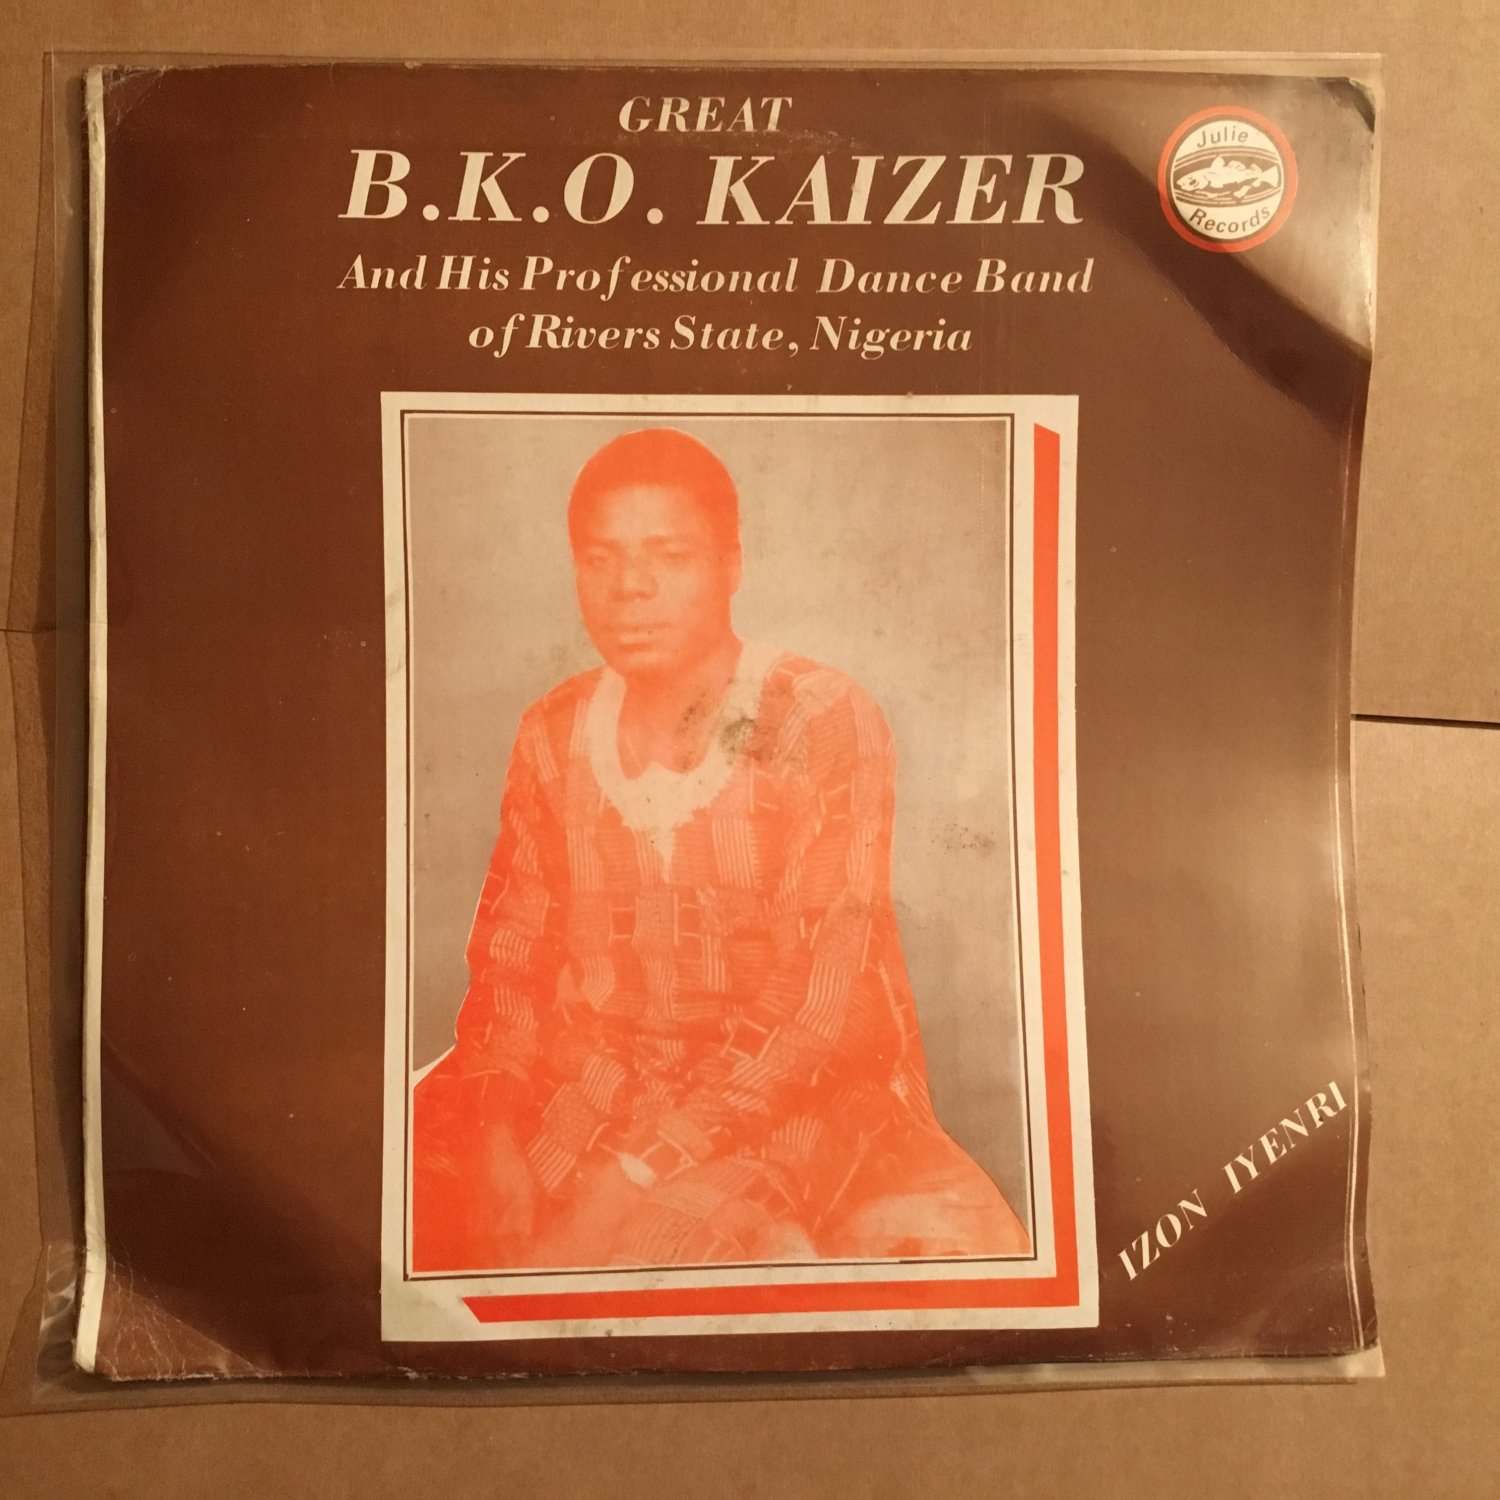 GREAT BKO KAIZER & HIS PROFESSIONAL DANCE BAND LP izon iyenri NIGERIA mp3 LISTEN